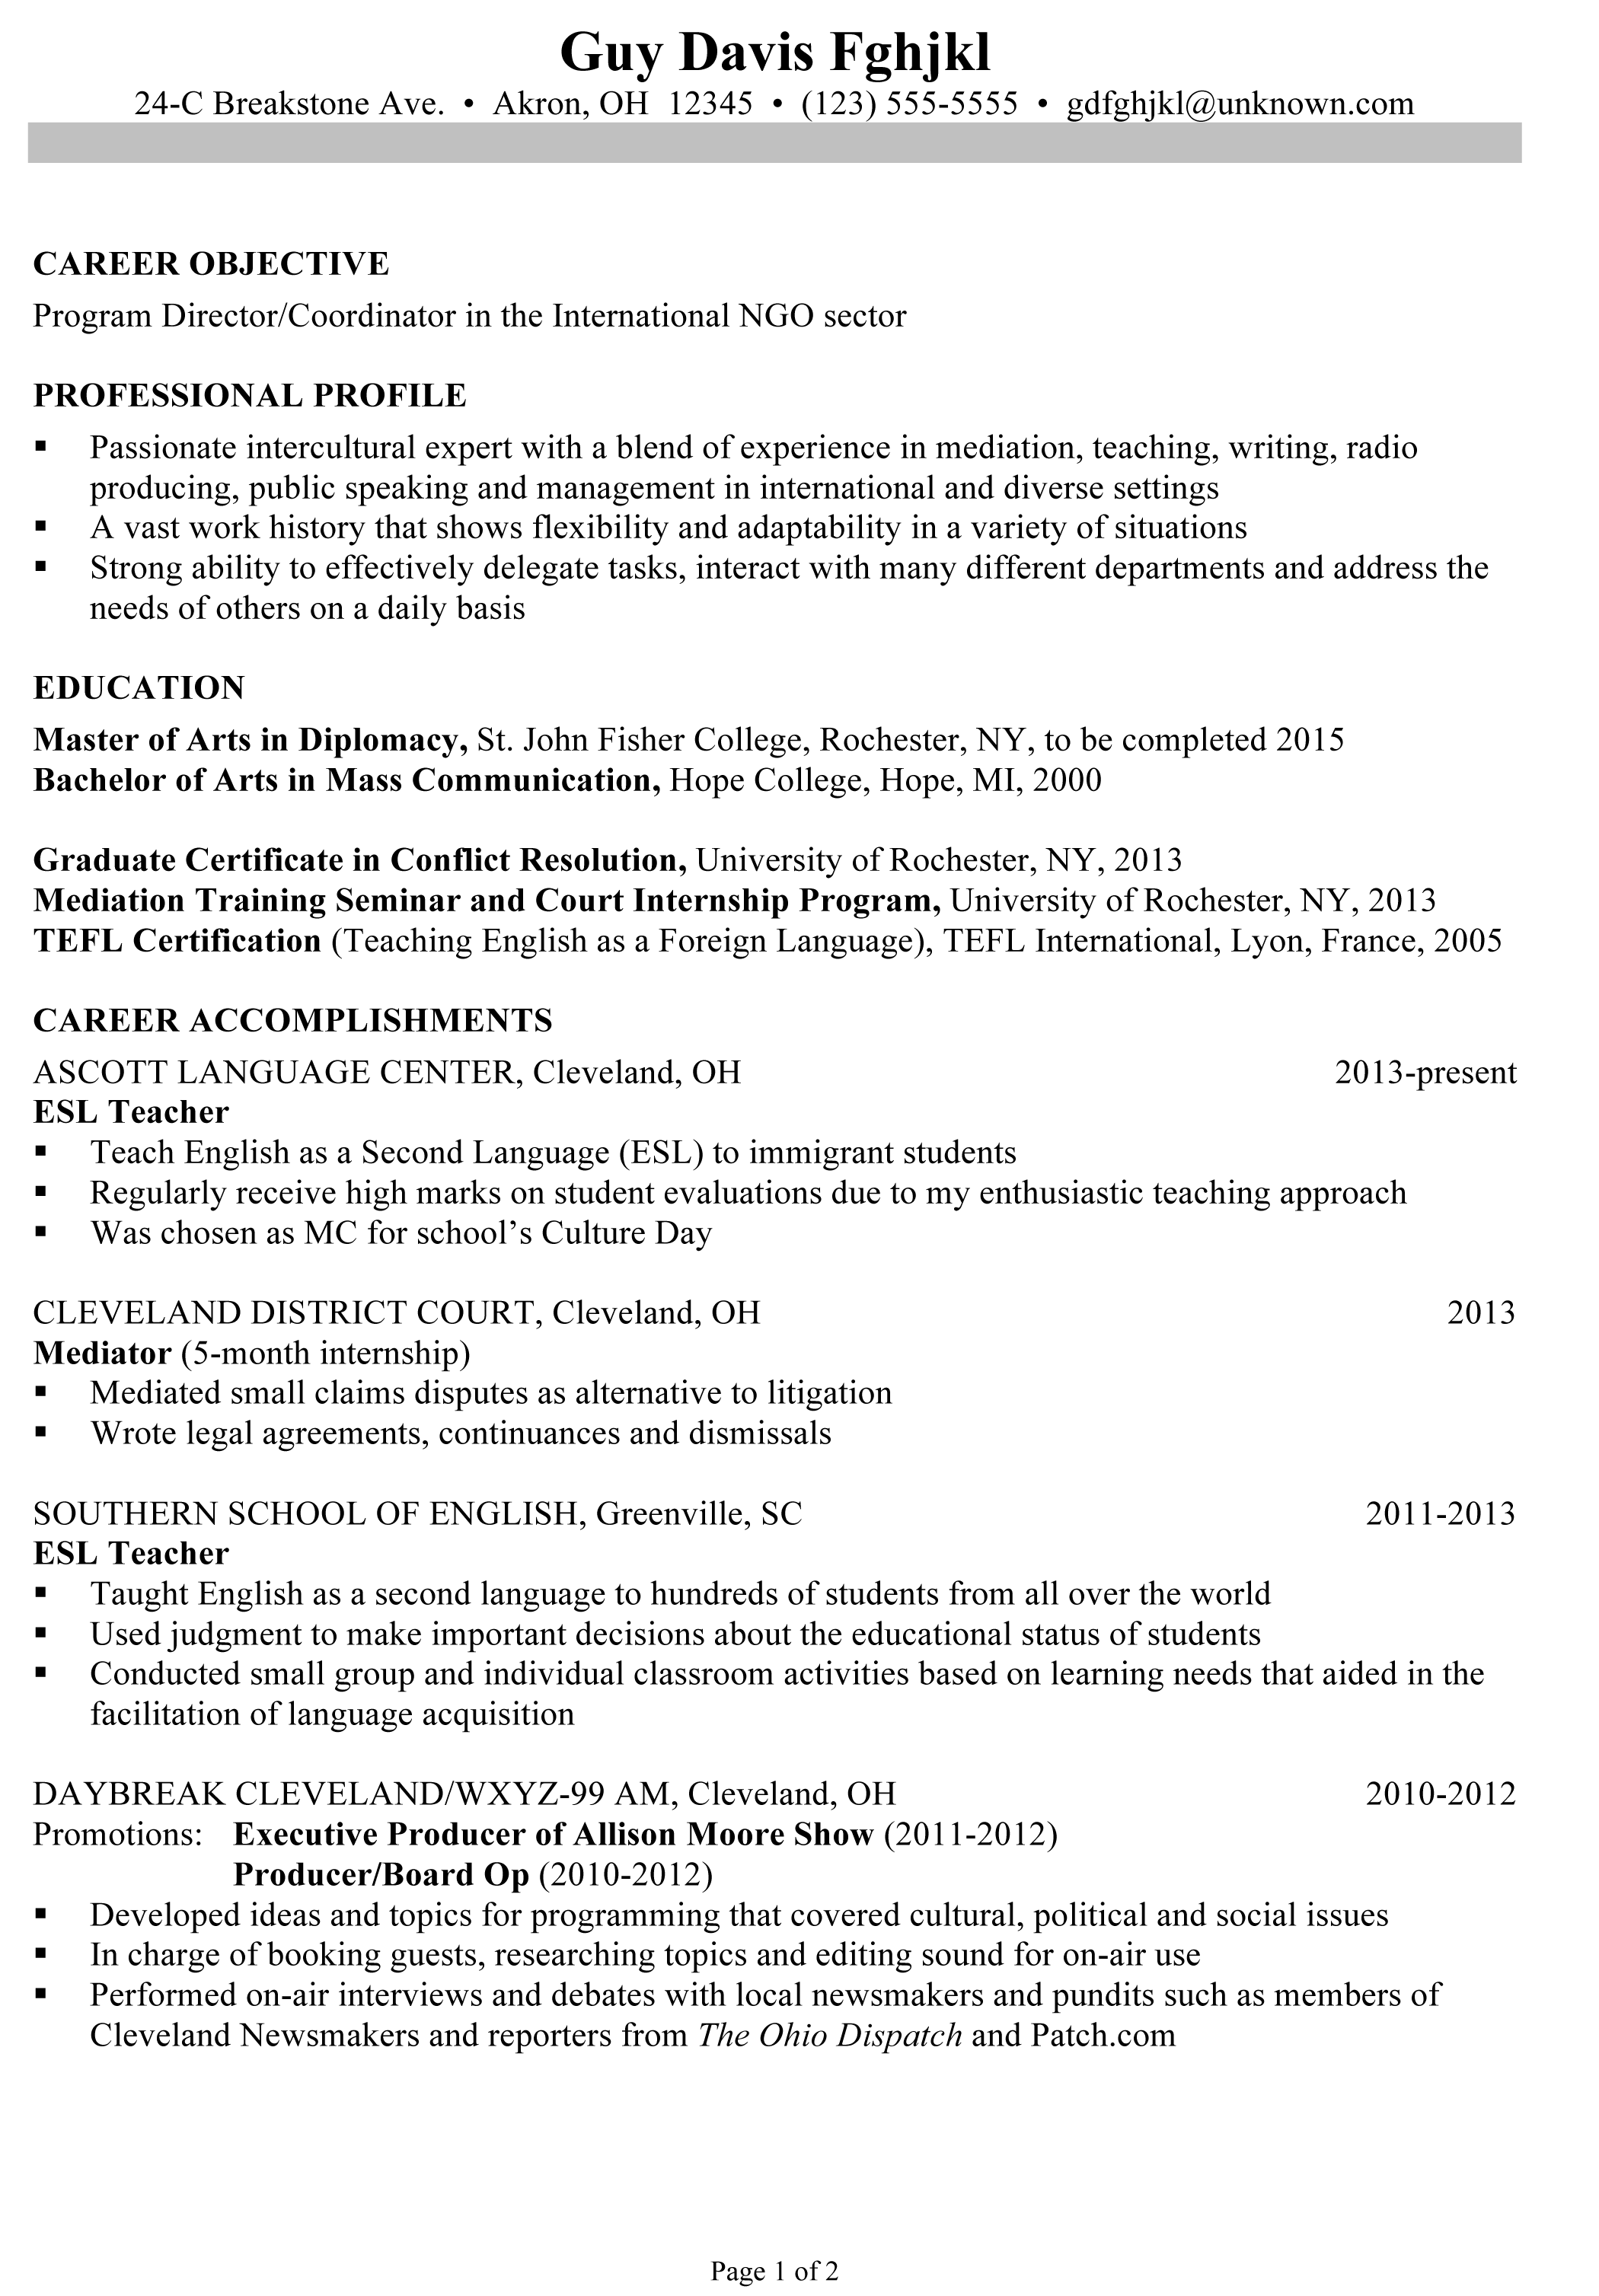 Professional Summary Resume Example Best TemplateSample Resumes Cover Letter Examples